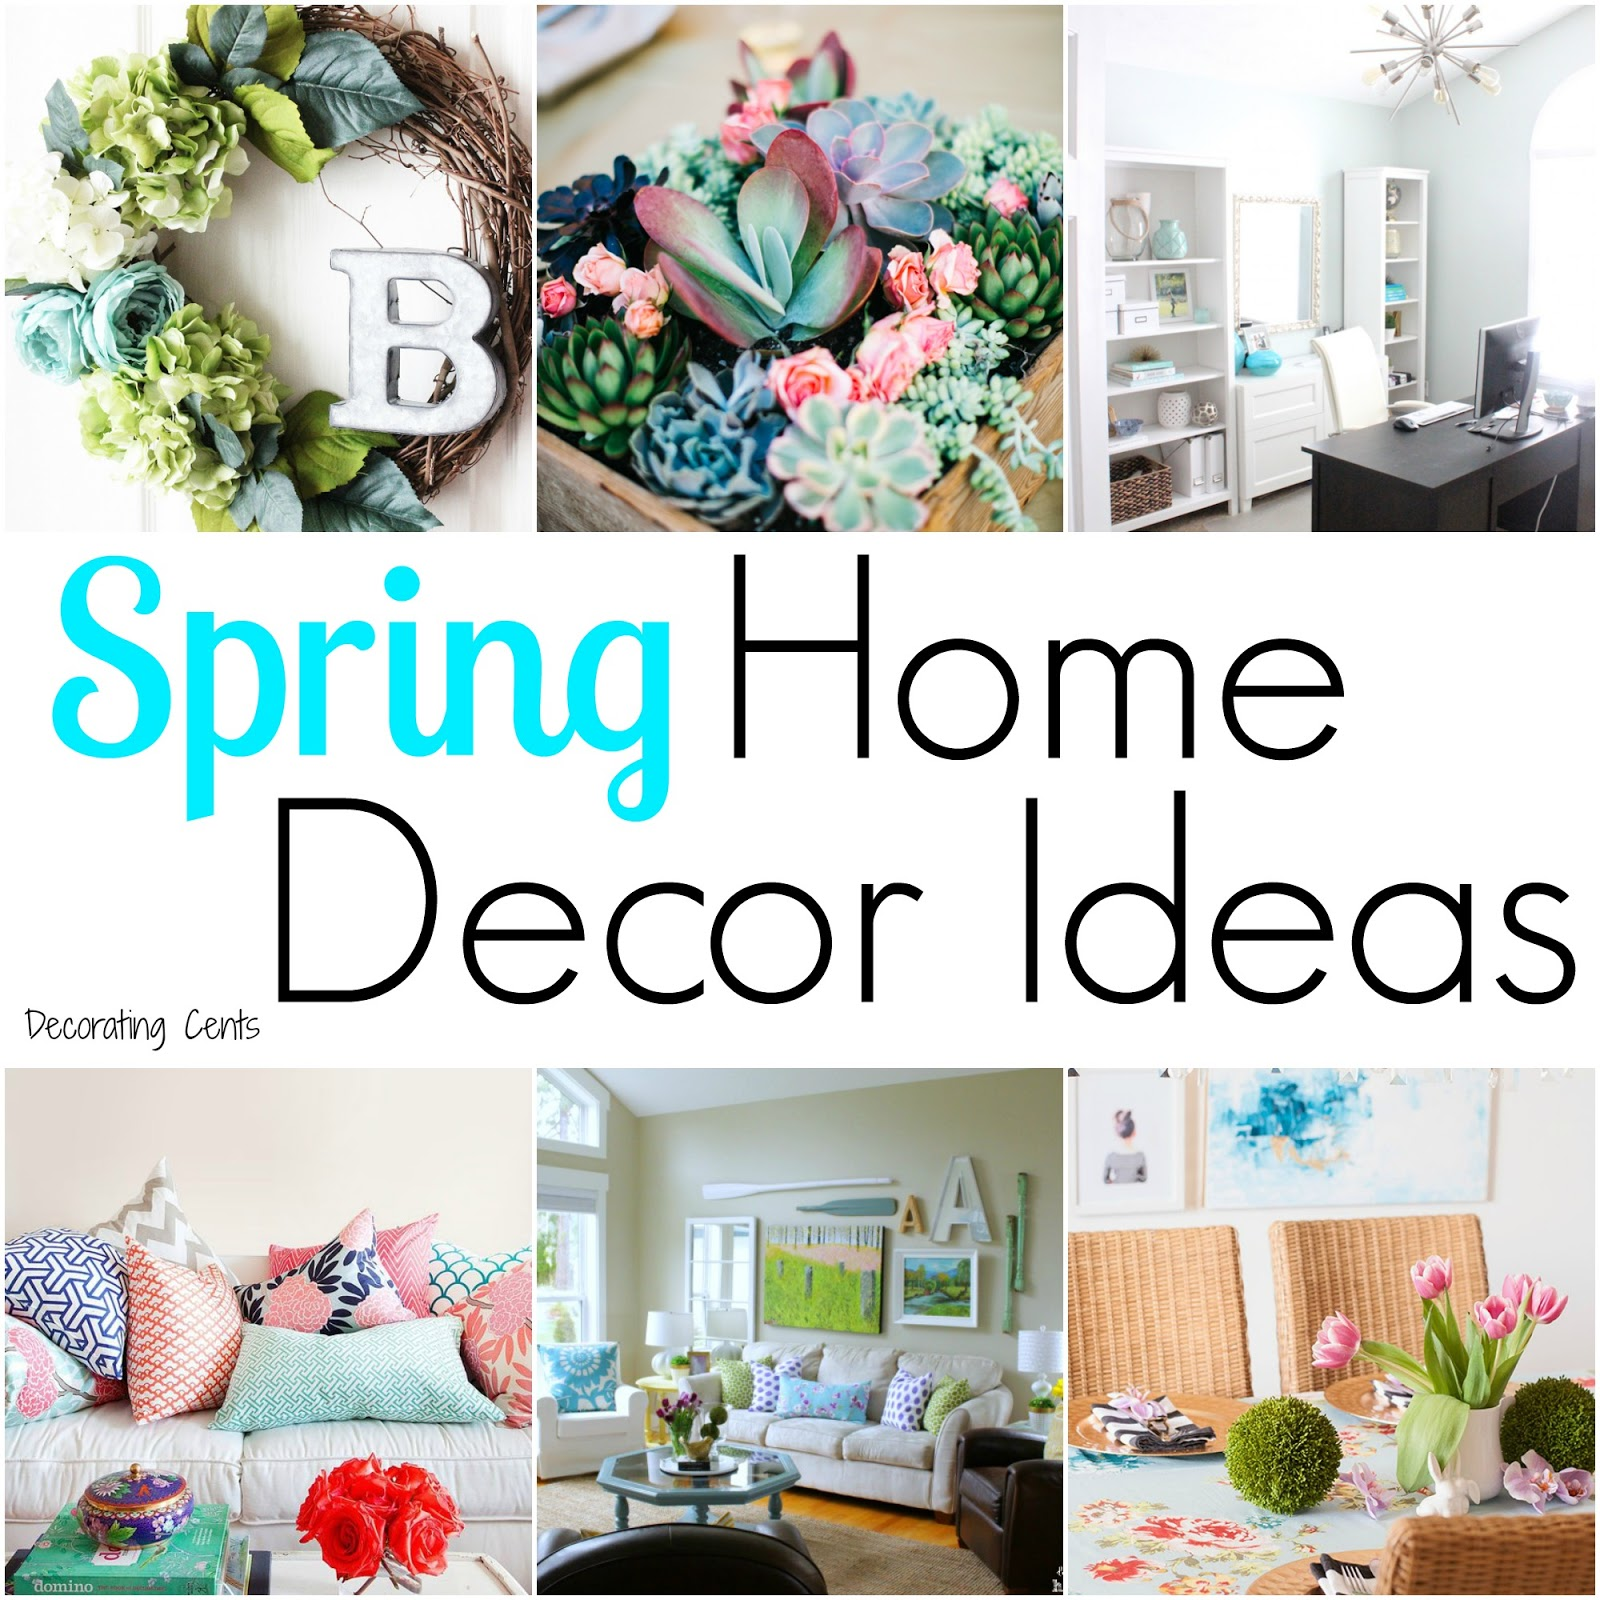 Decorating cents spring home decor ideas for Home design ideas videos